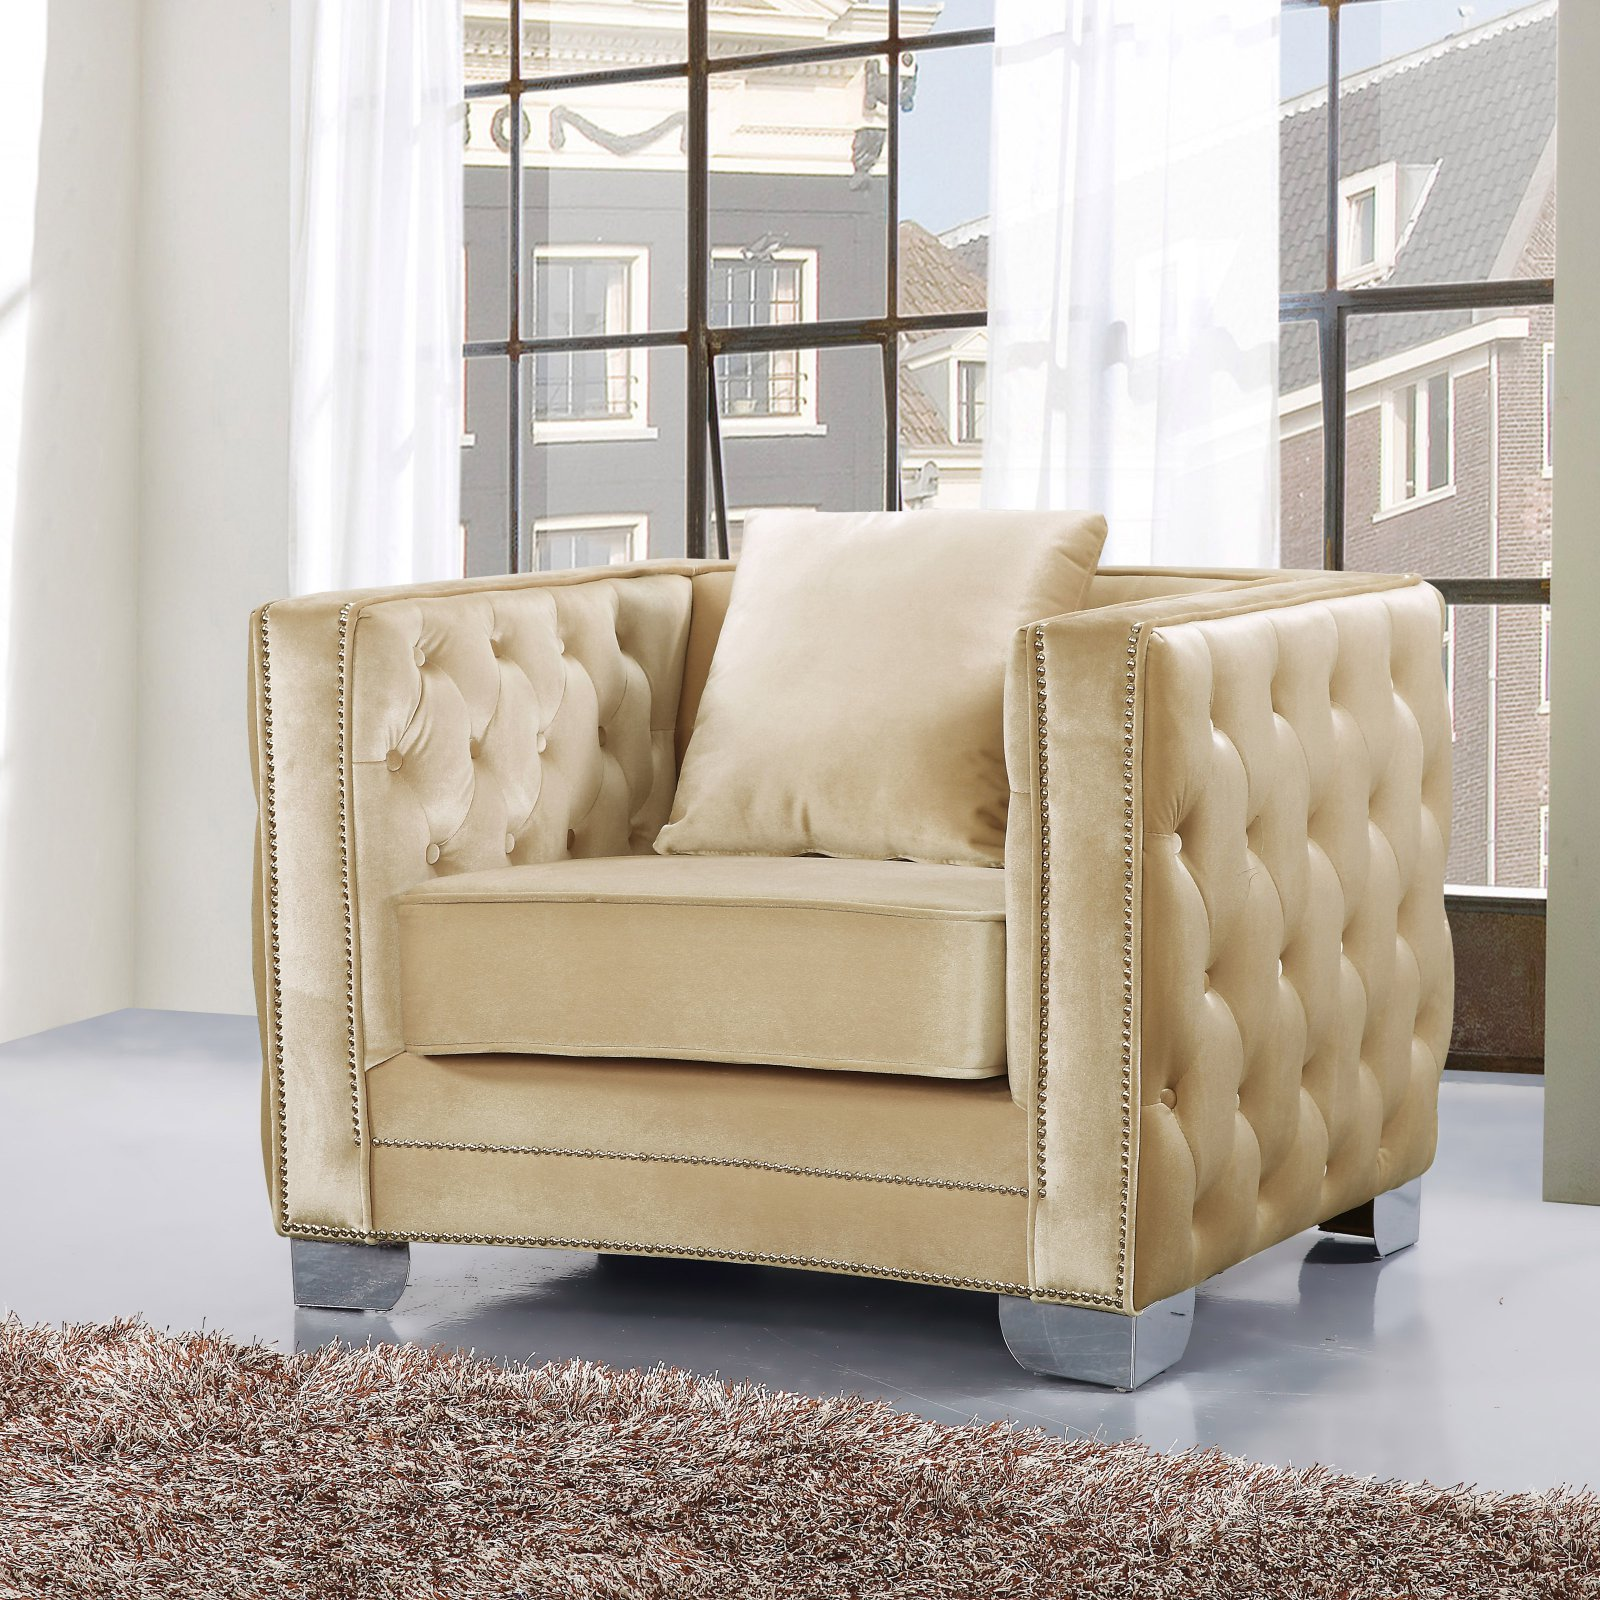 Meridian Furniture Inc Reese Club Chair